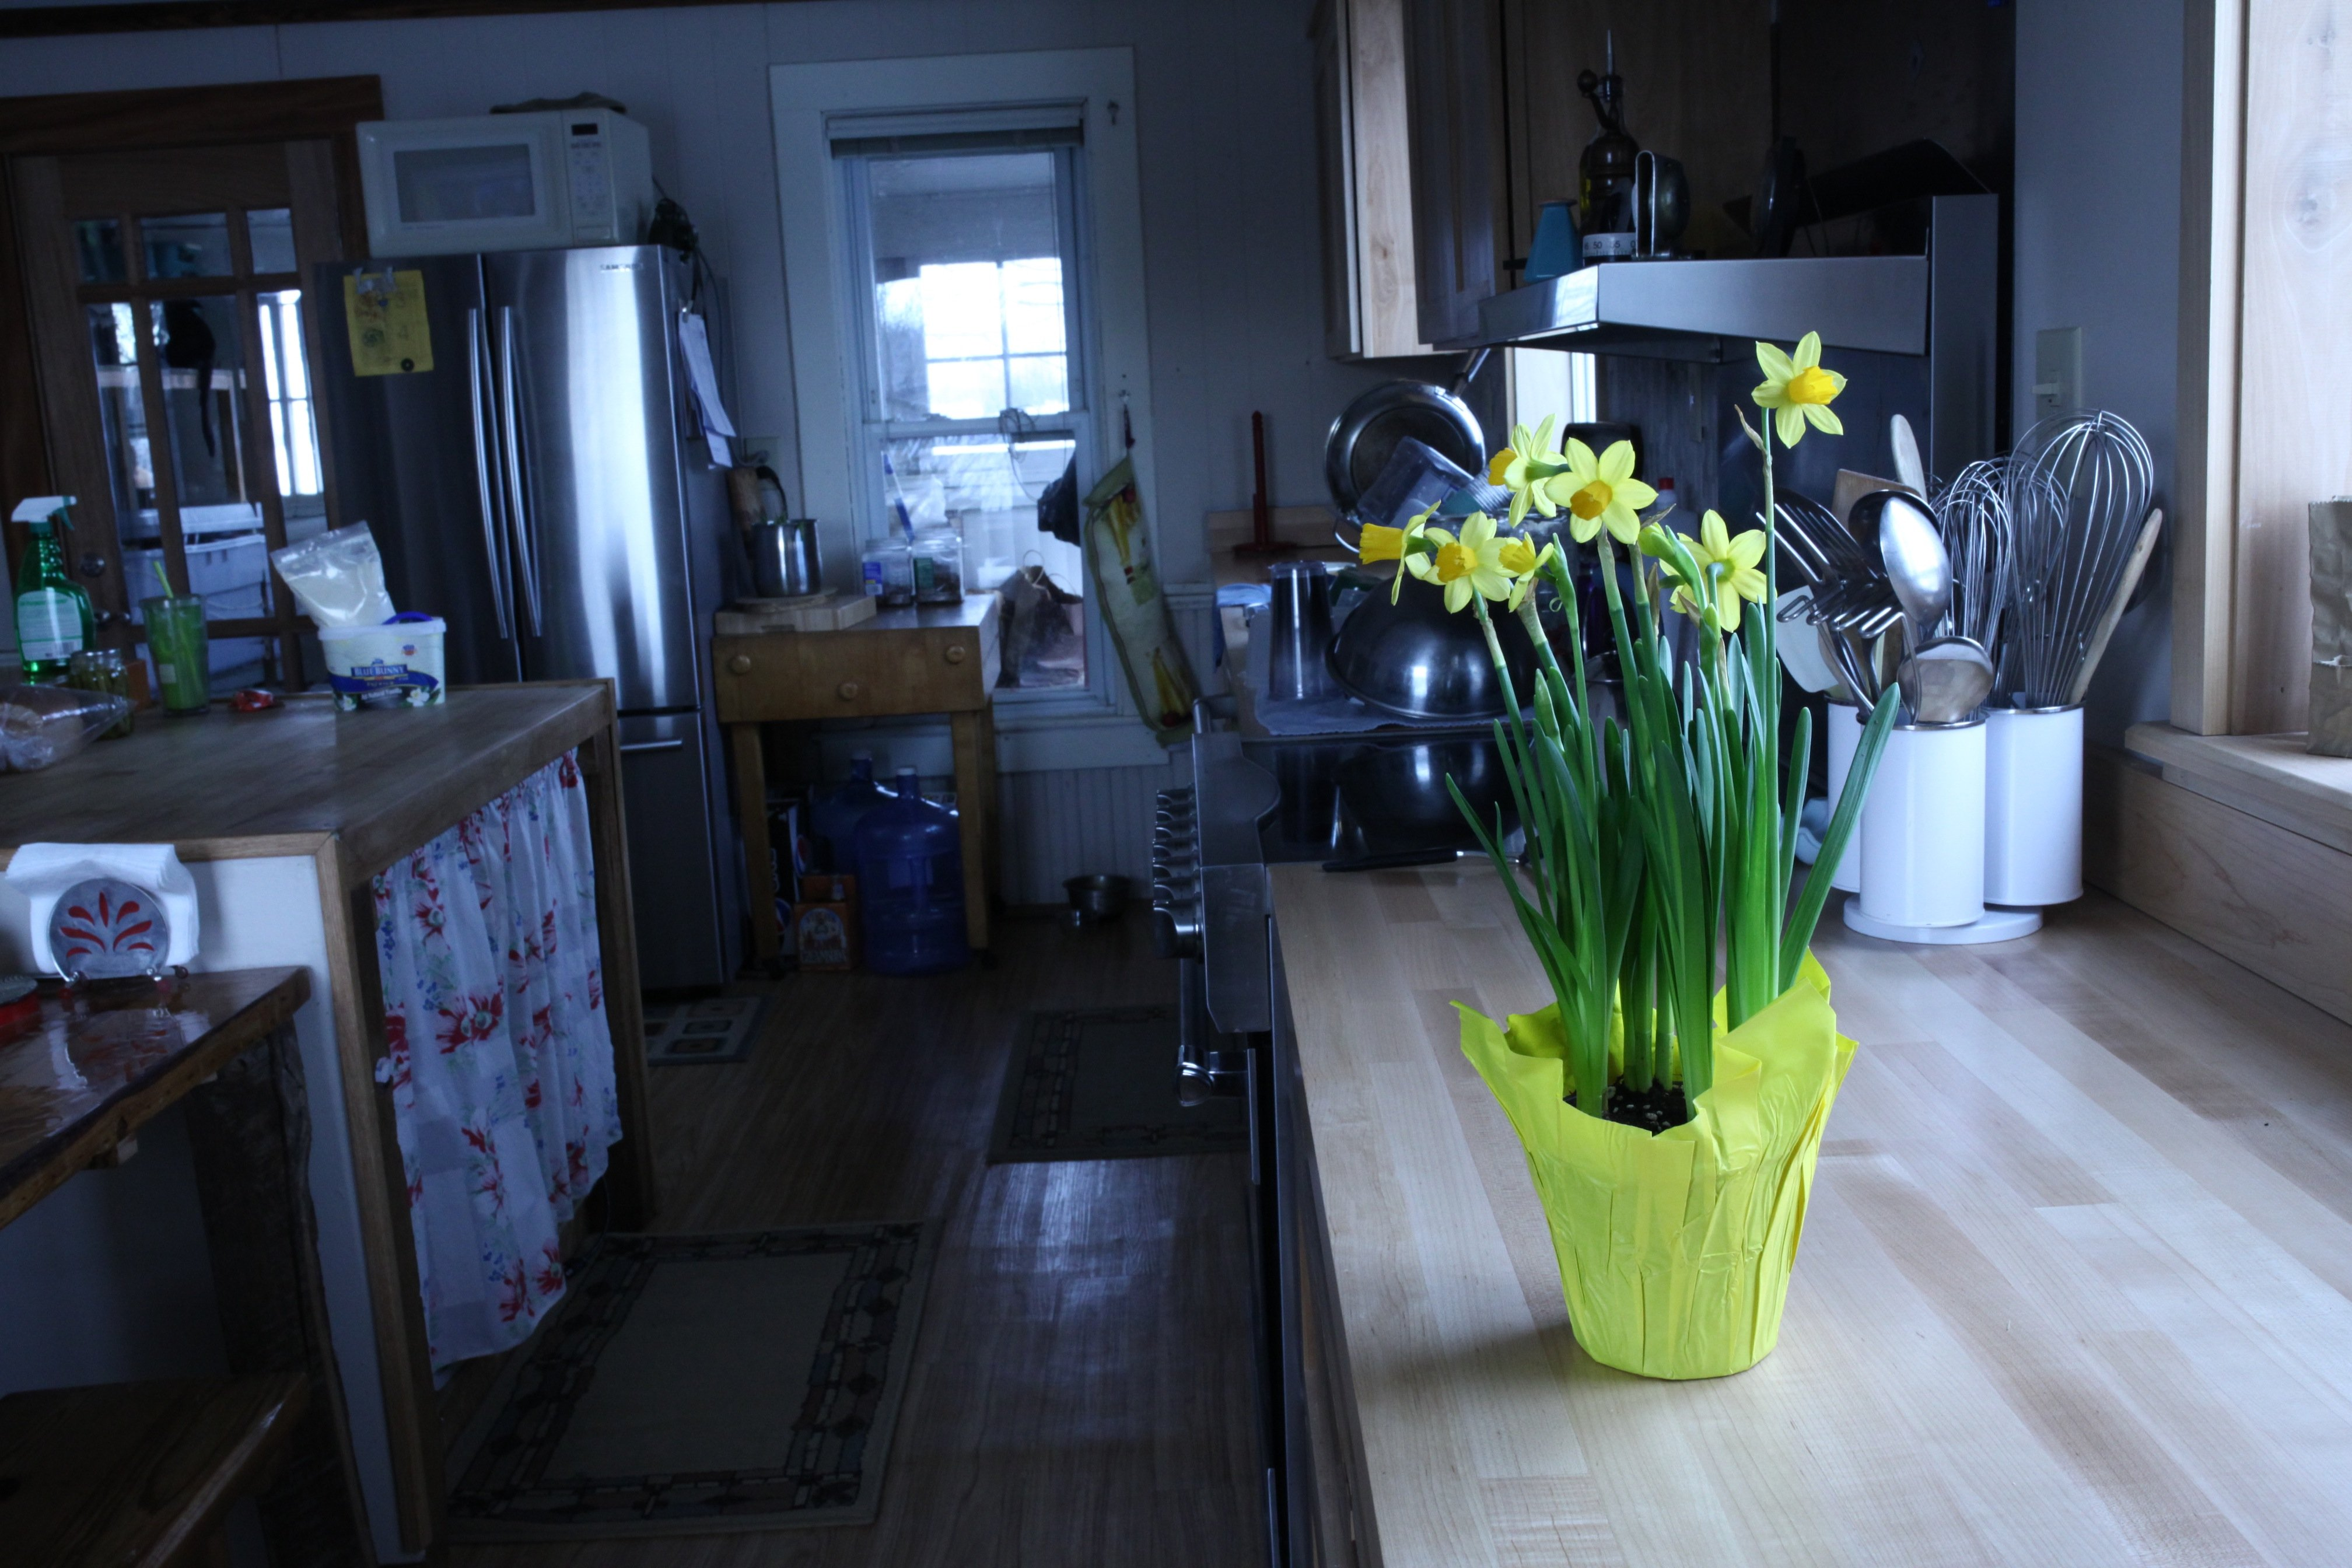 spring bulbs in kitchen